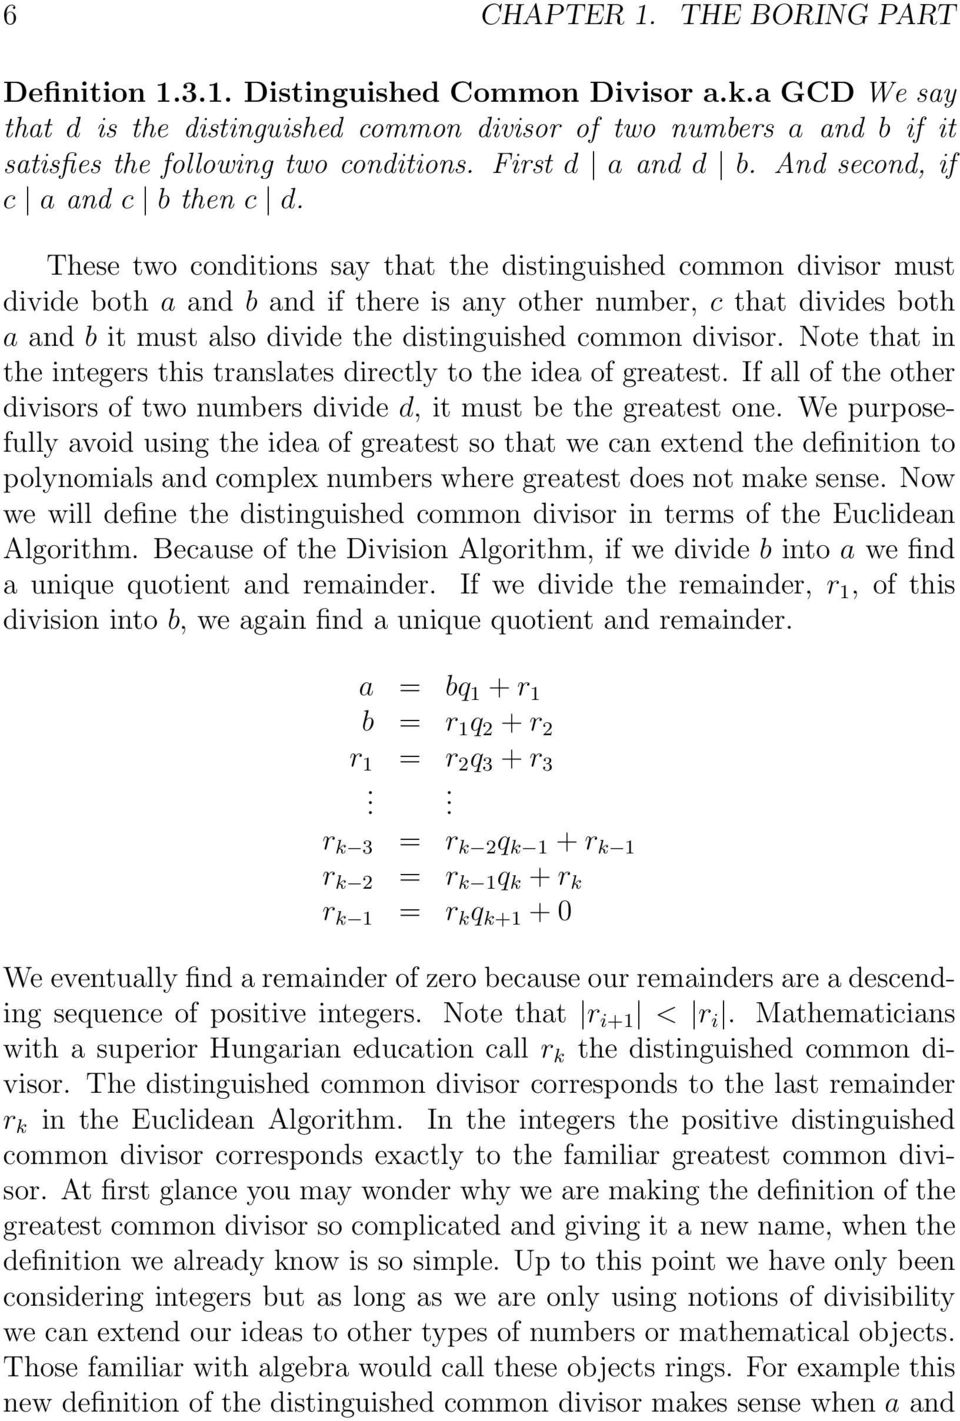 These two conditions say that the distinguished common divisor must divide both a and b and if there is any other number, c that divides both a and b it must also divide the distinguished common